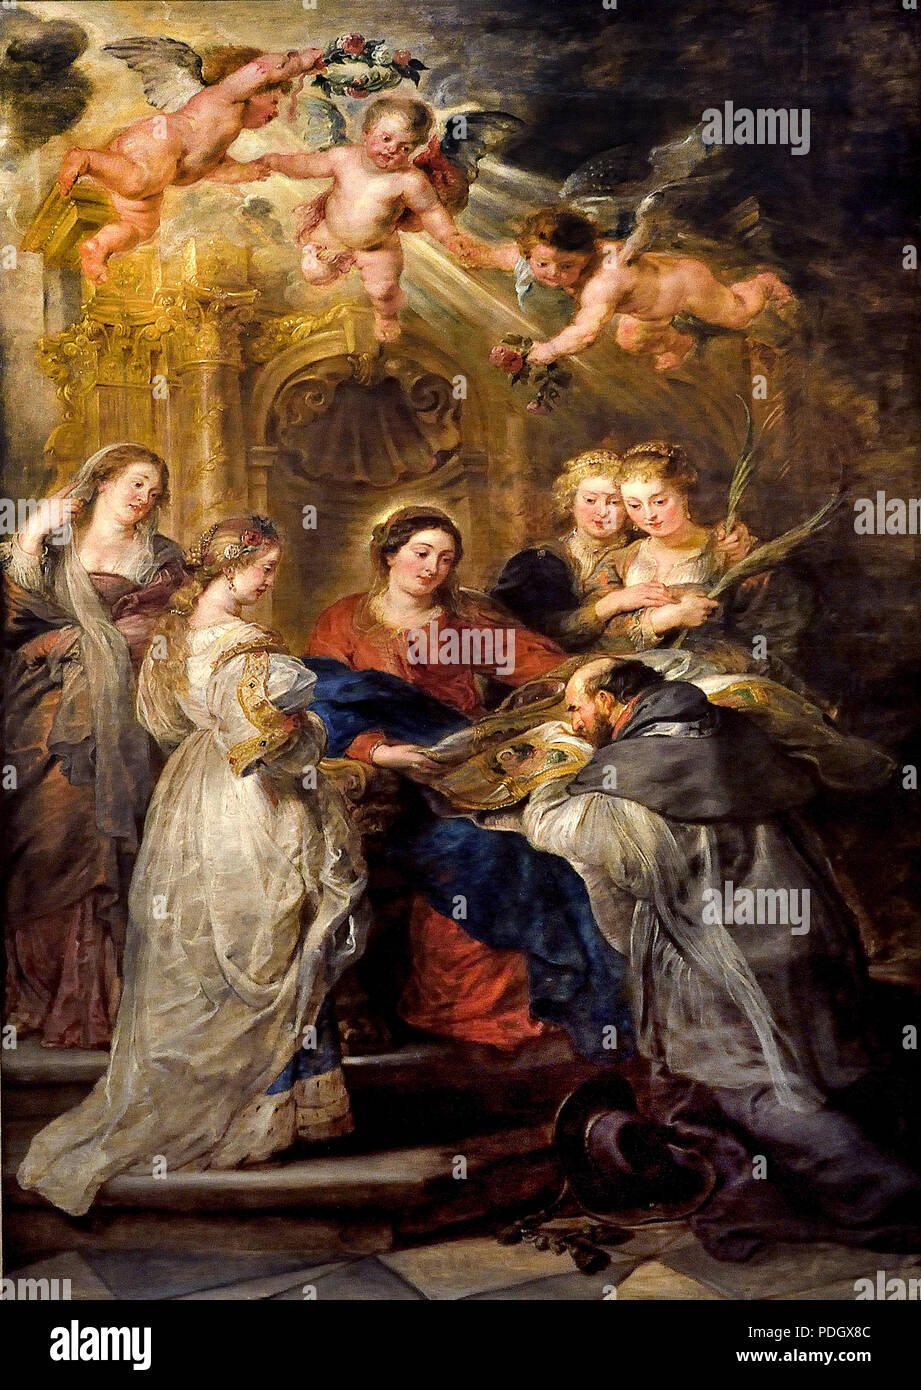 ILDEFONSO ALTAR: MARIA APPEARS TO THE ST. ILDEFONSO (MEDIUM), ARCHANGEL ALBRECHT VII. (LEFT INNER WINGS) BZW. INFANTINE ISABELLA CLARA EUGENIA (RIGHT INTERNAL WINGS), BOTH WITH THEIR GUARDIAN PATRONS 1630/1632 Peter Paul Rubens (1577–1640) Flemish Belgian Belgium - Stock Image